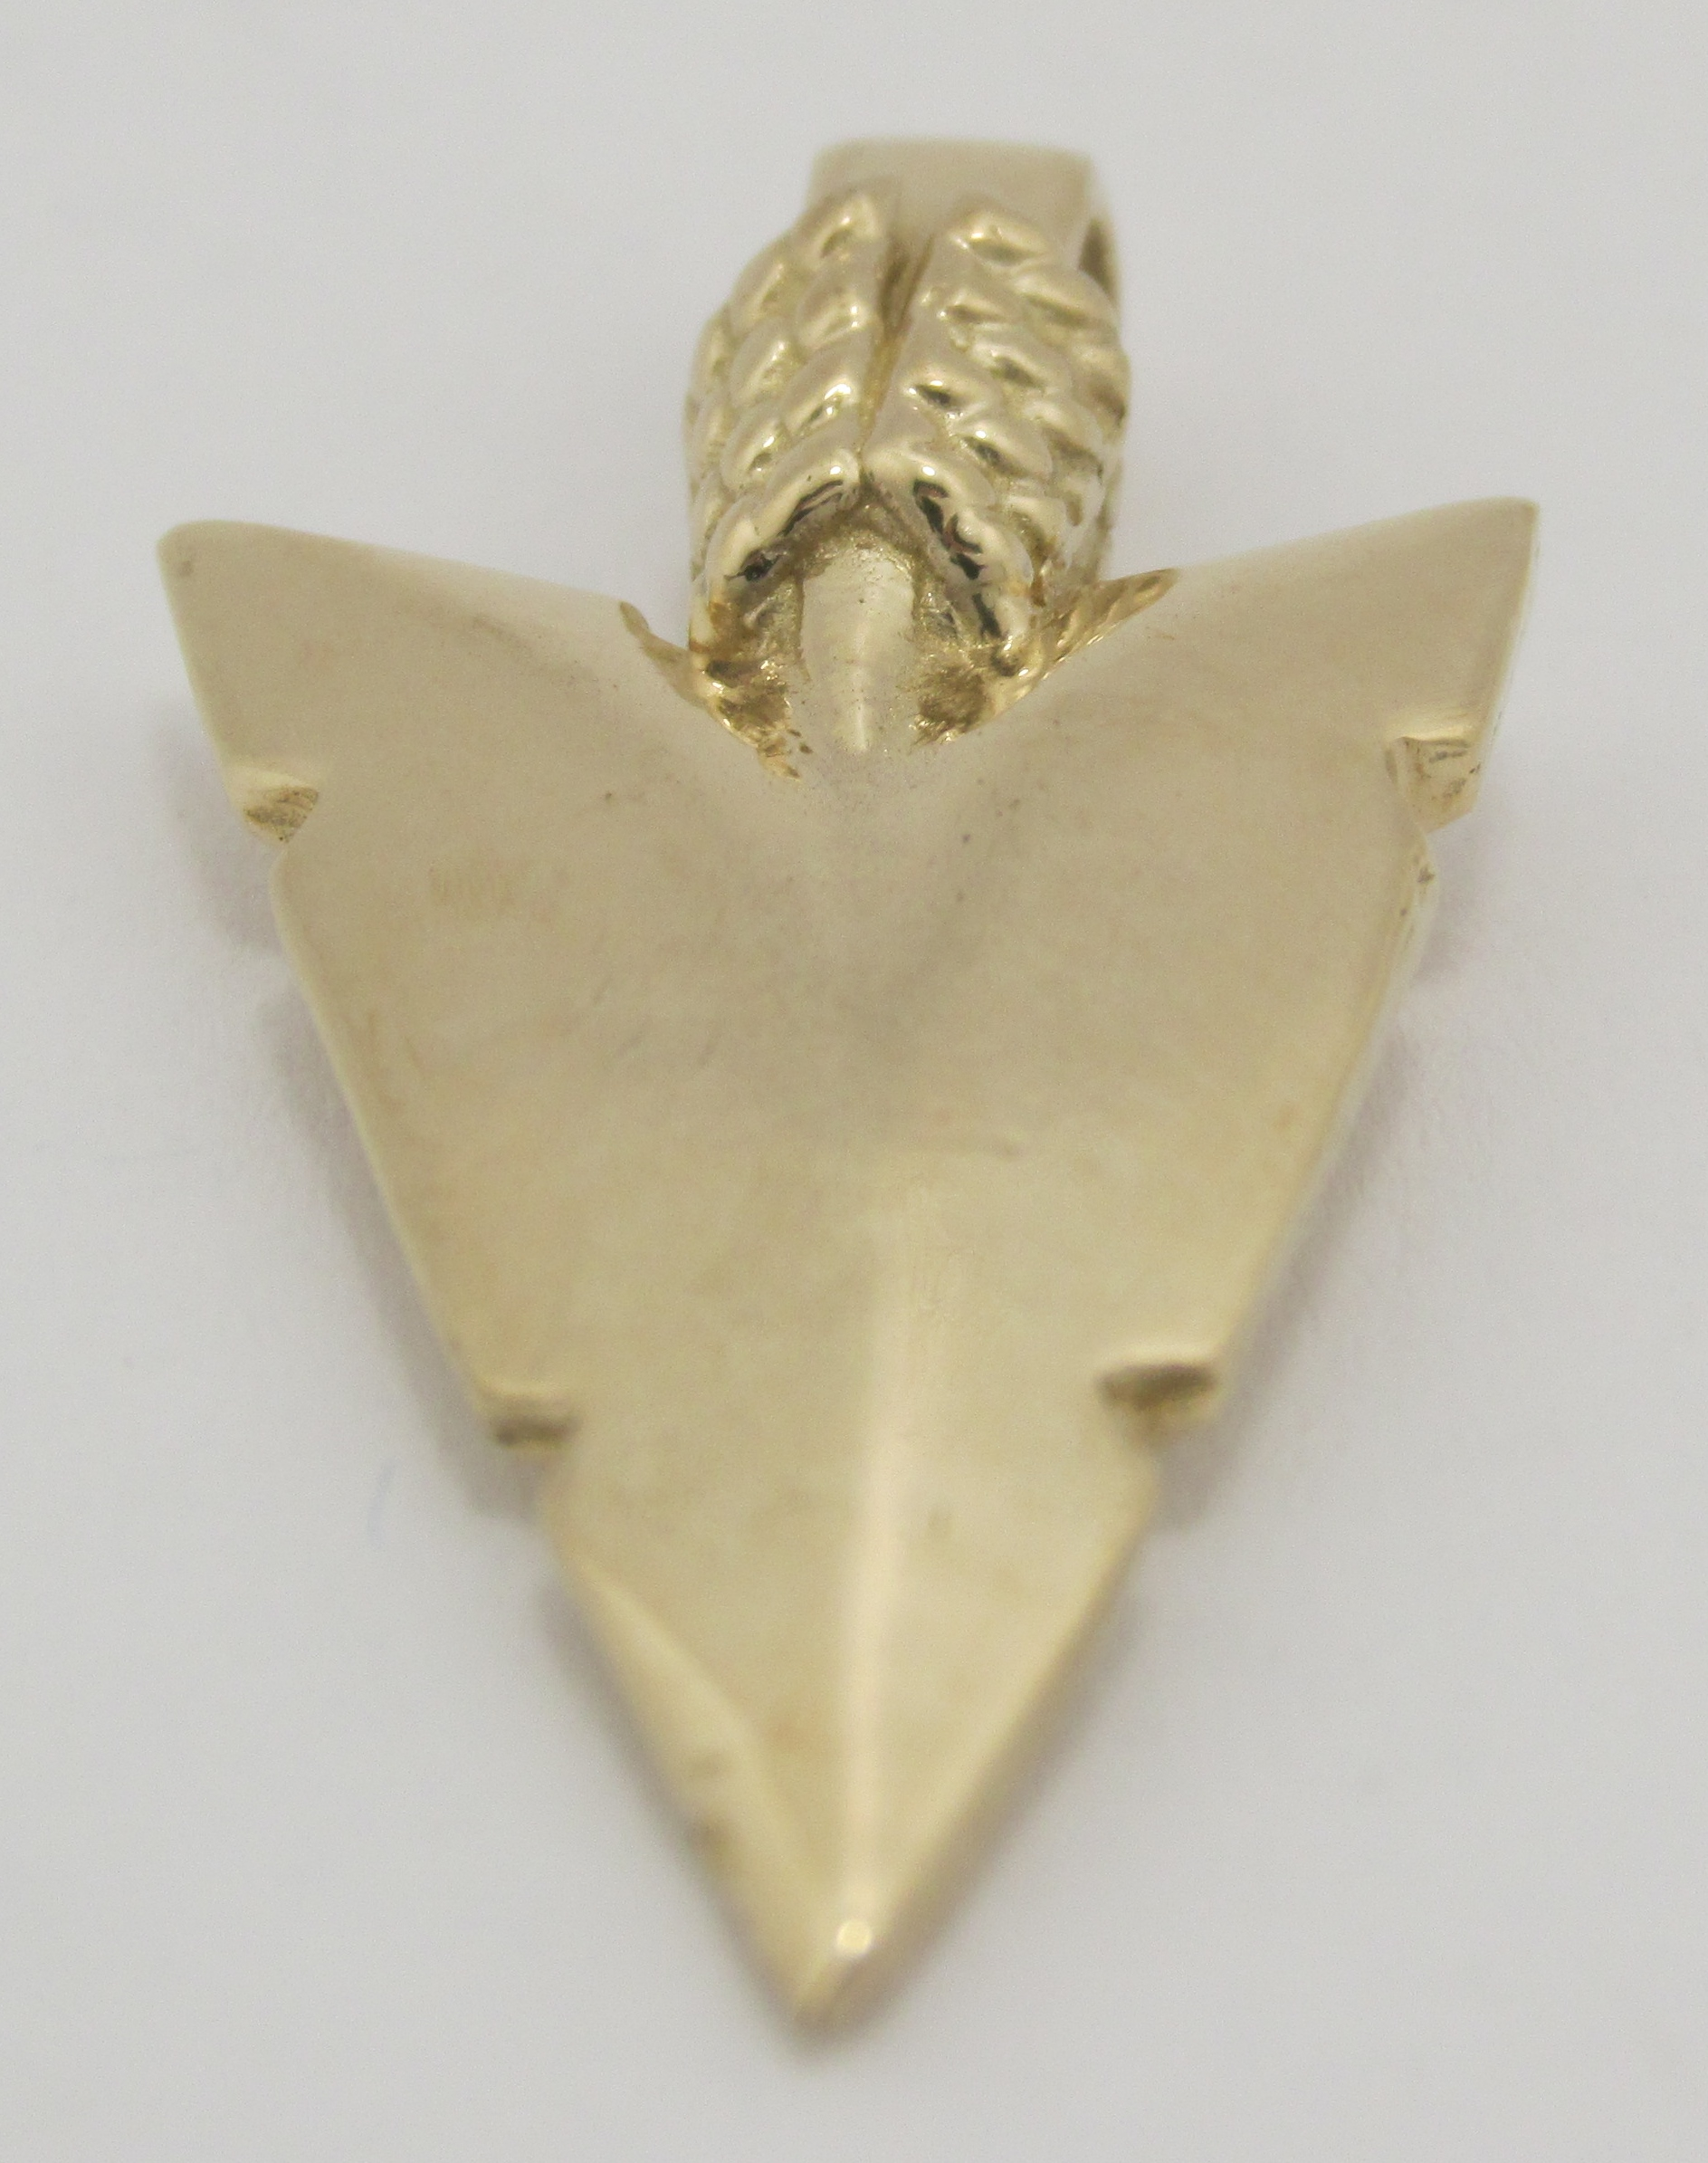 14k yellow gold arrowhead pendant w rope on bale exquisite 14k yellow gold arrowhead pendant w rope on bale aloadofball Image collections